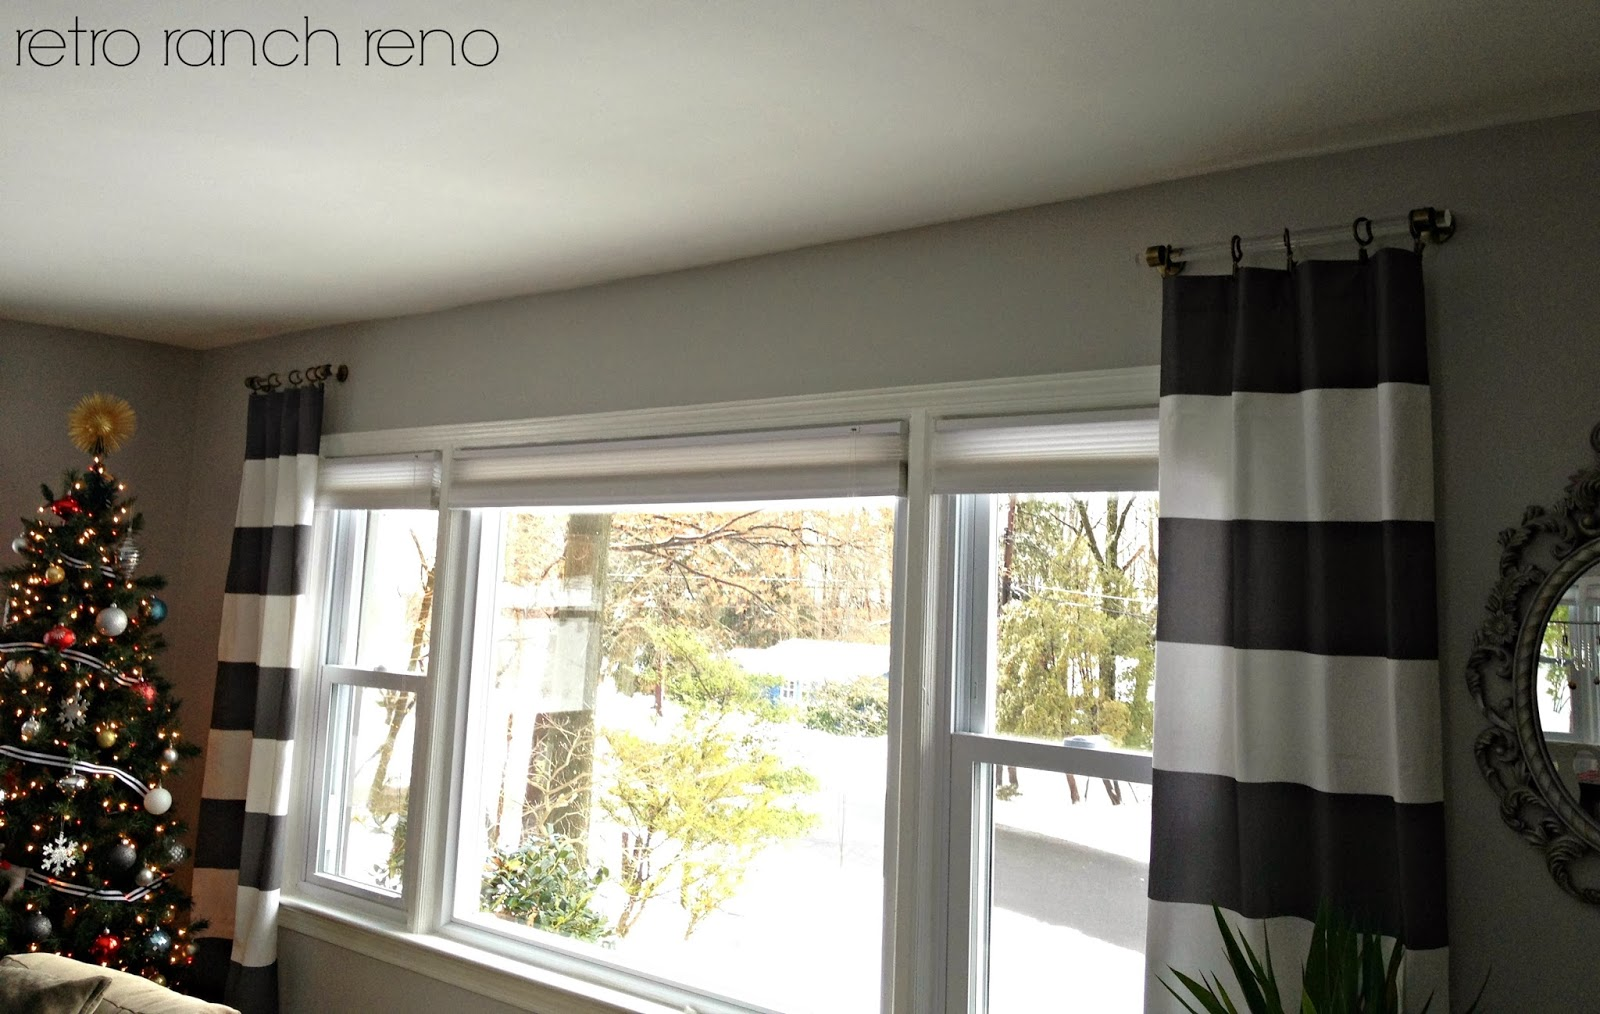 Retro ranch reno lucite curtain rods a question - Long or short curtains in living room ...